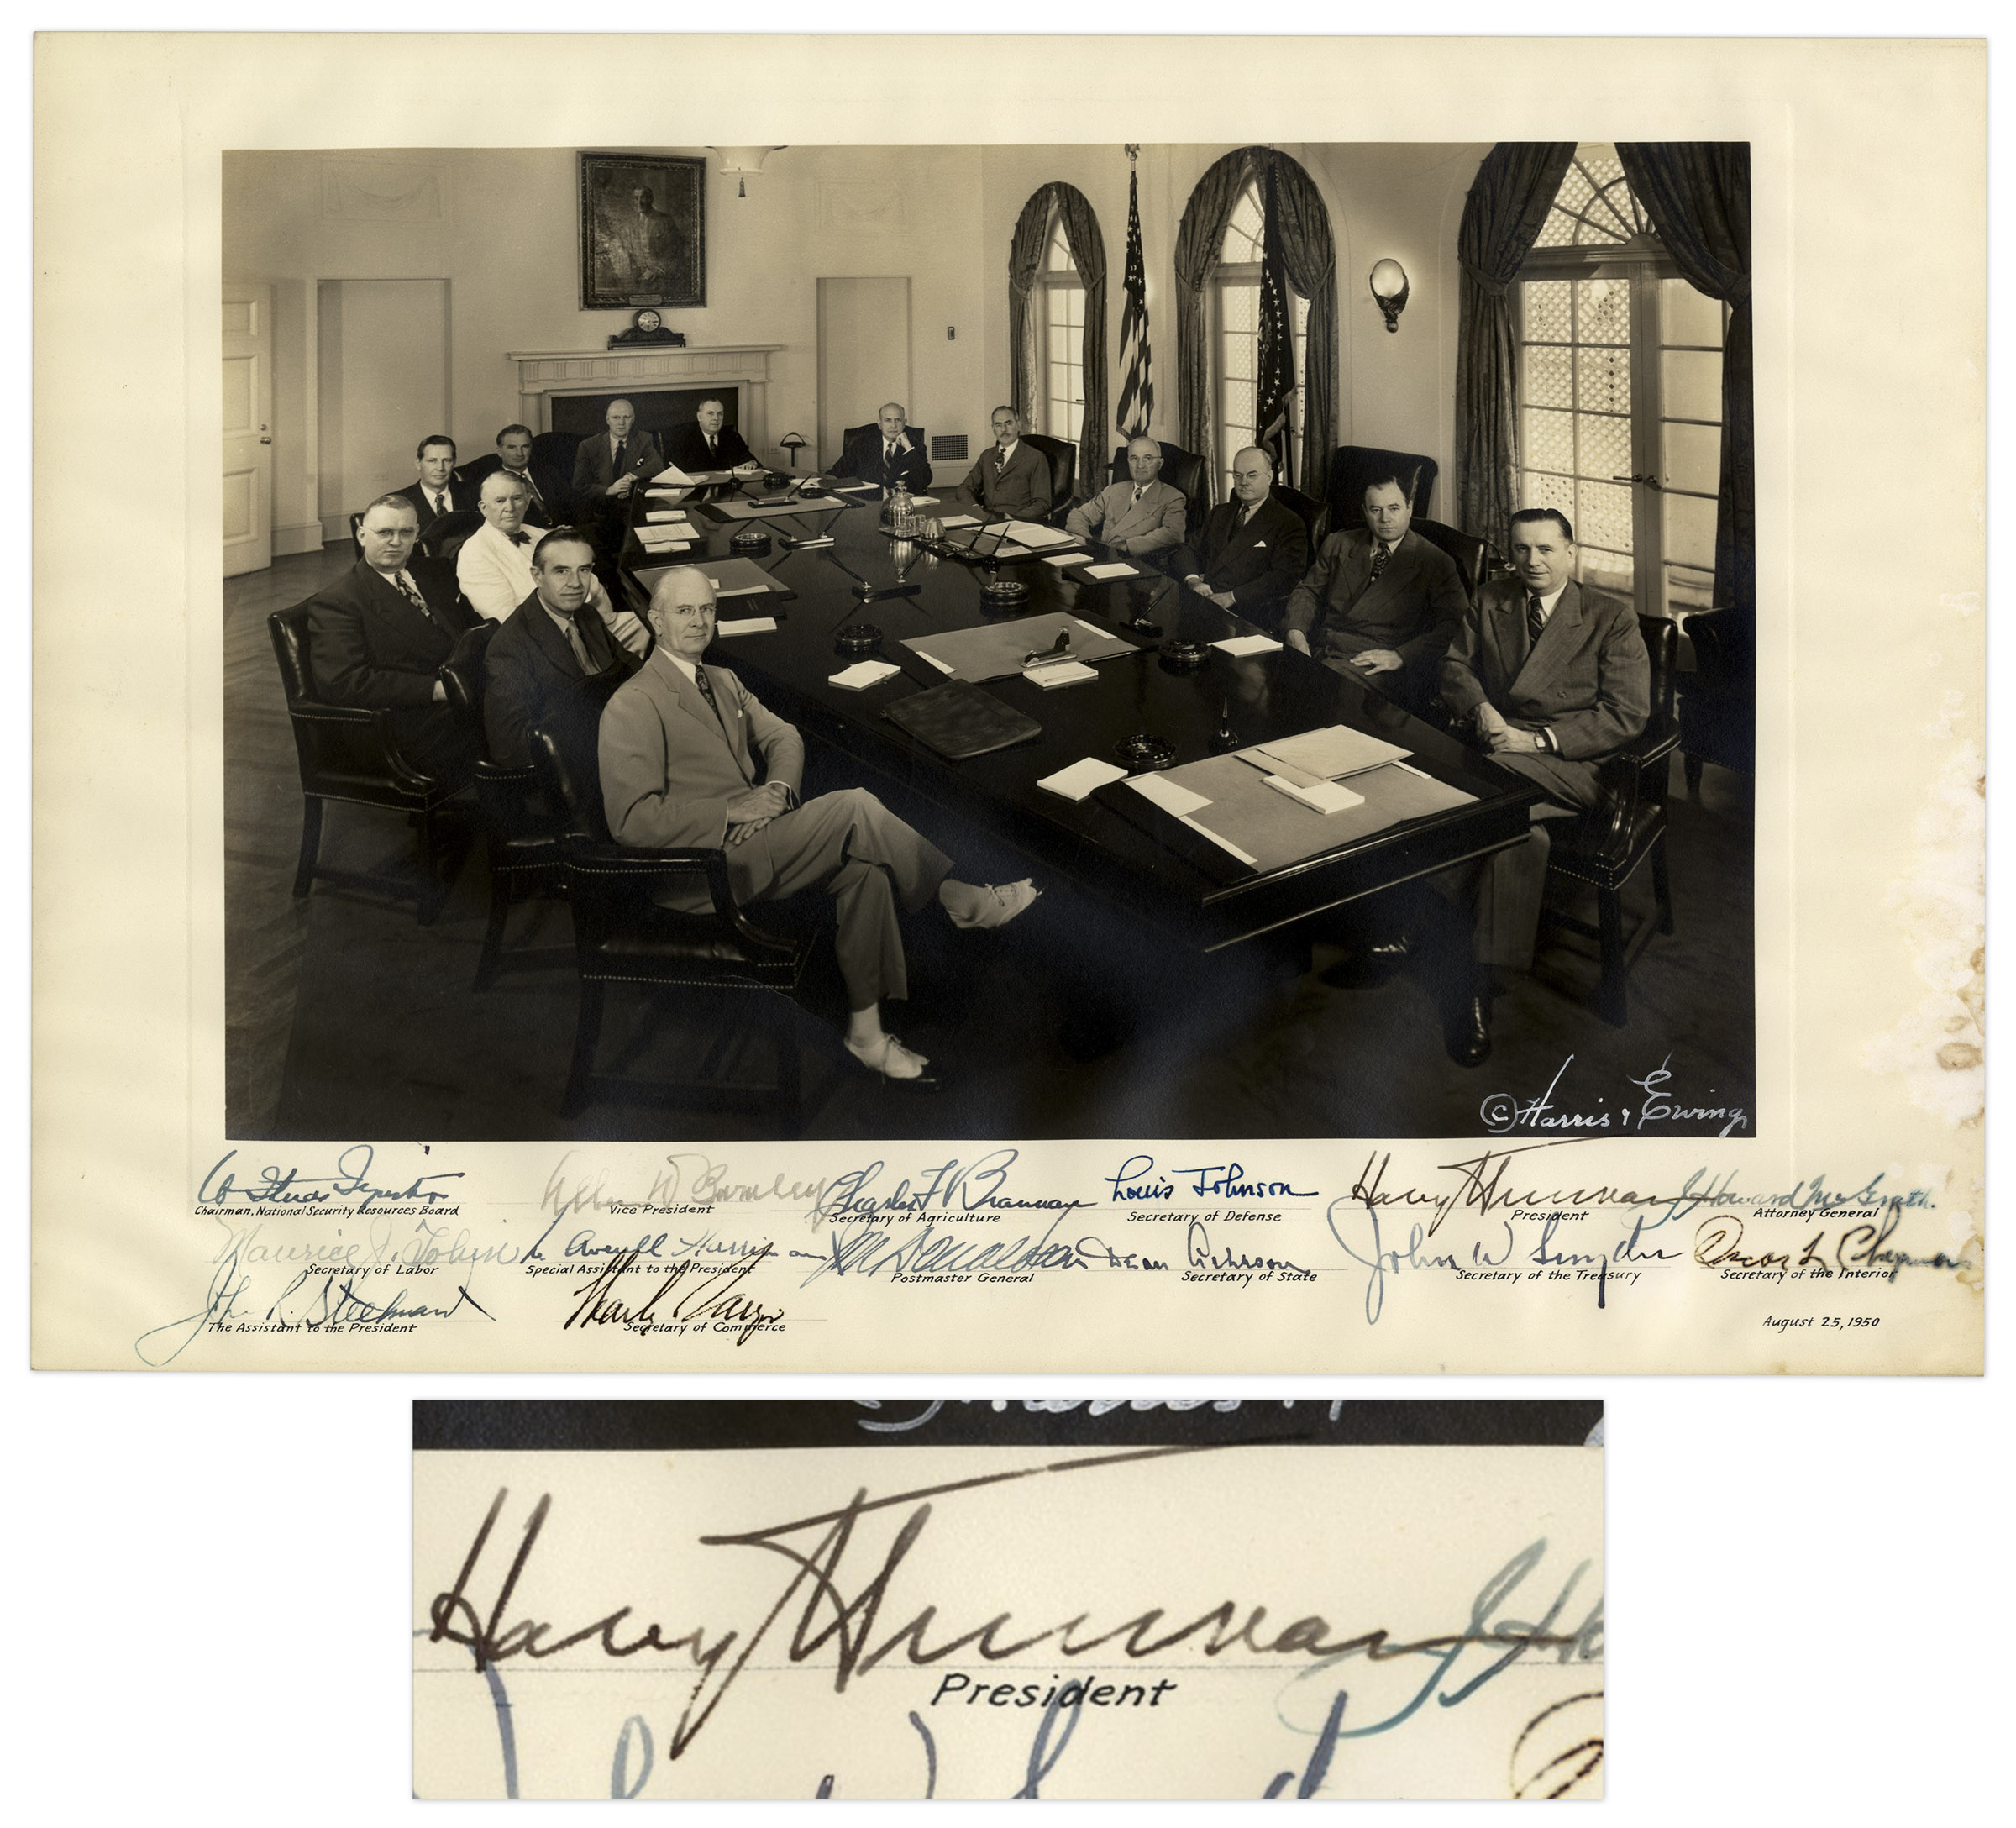 Harry Truman Memorabilia; Harry Truman Autograph Sold for $54,000